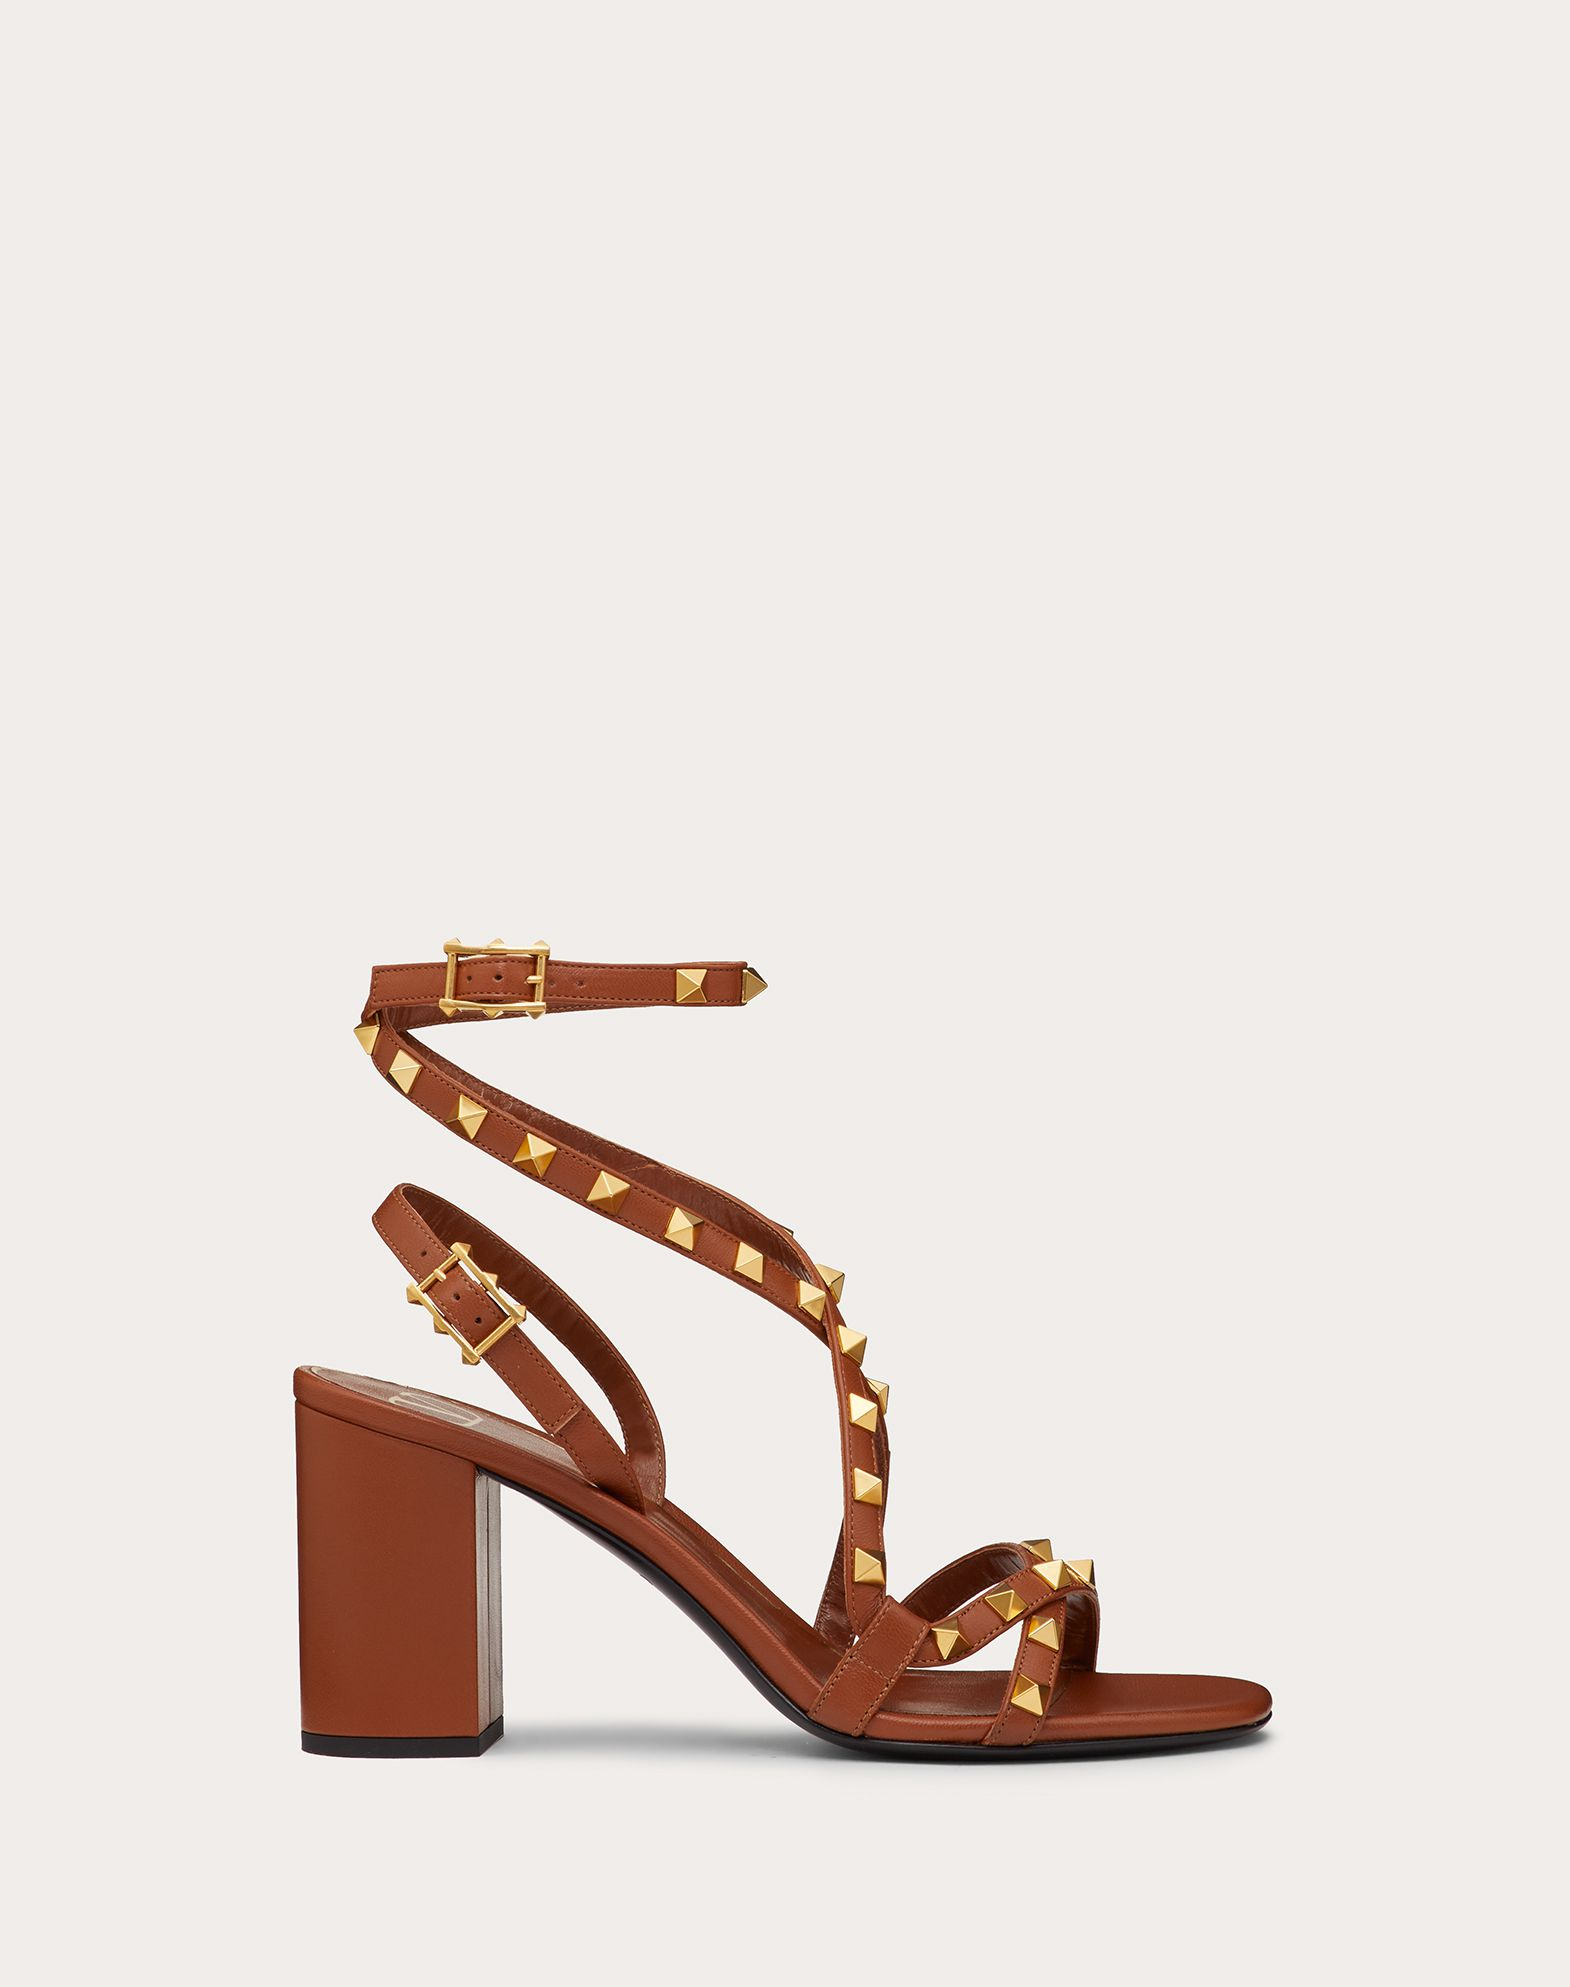 Rockstud Flair nappa sandal 80 mm